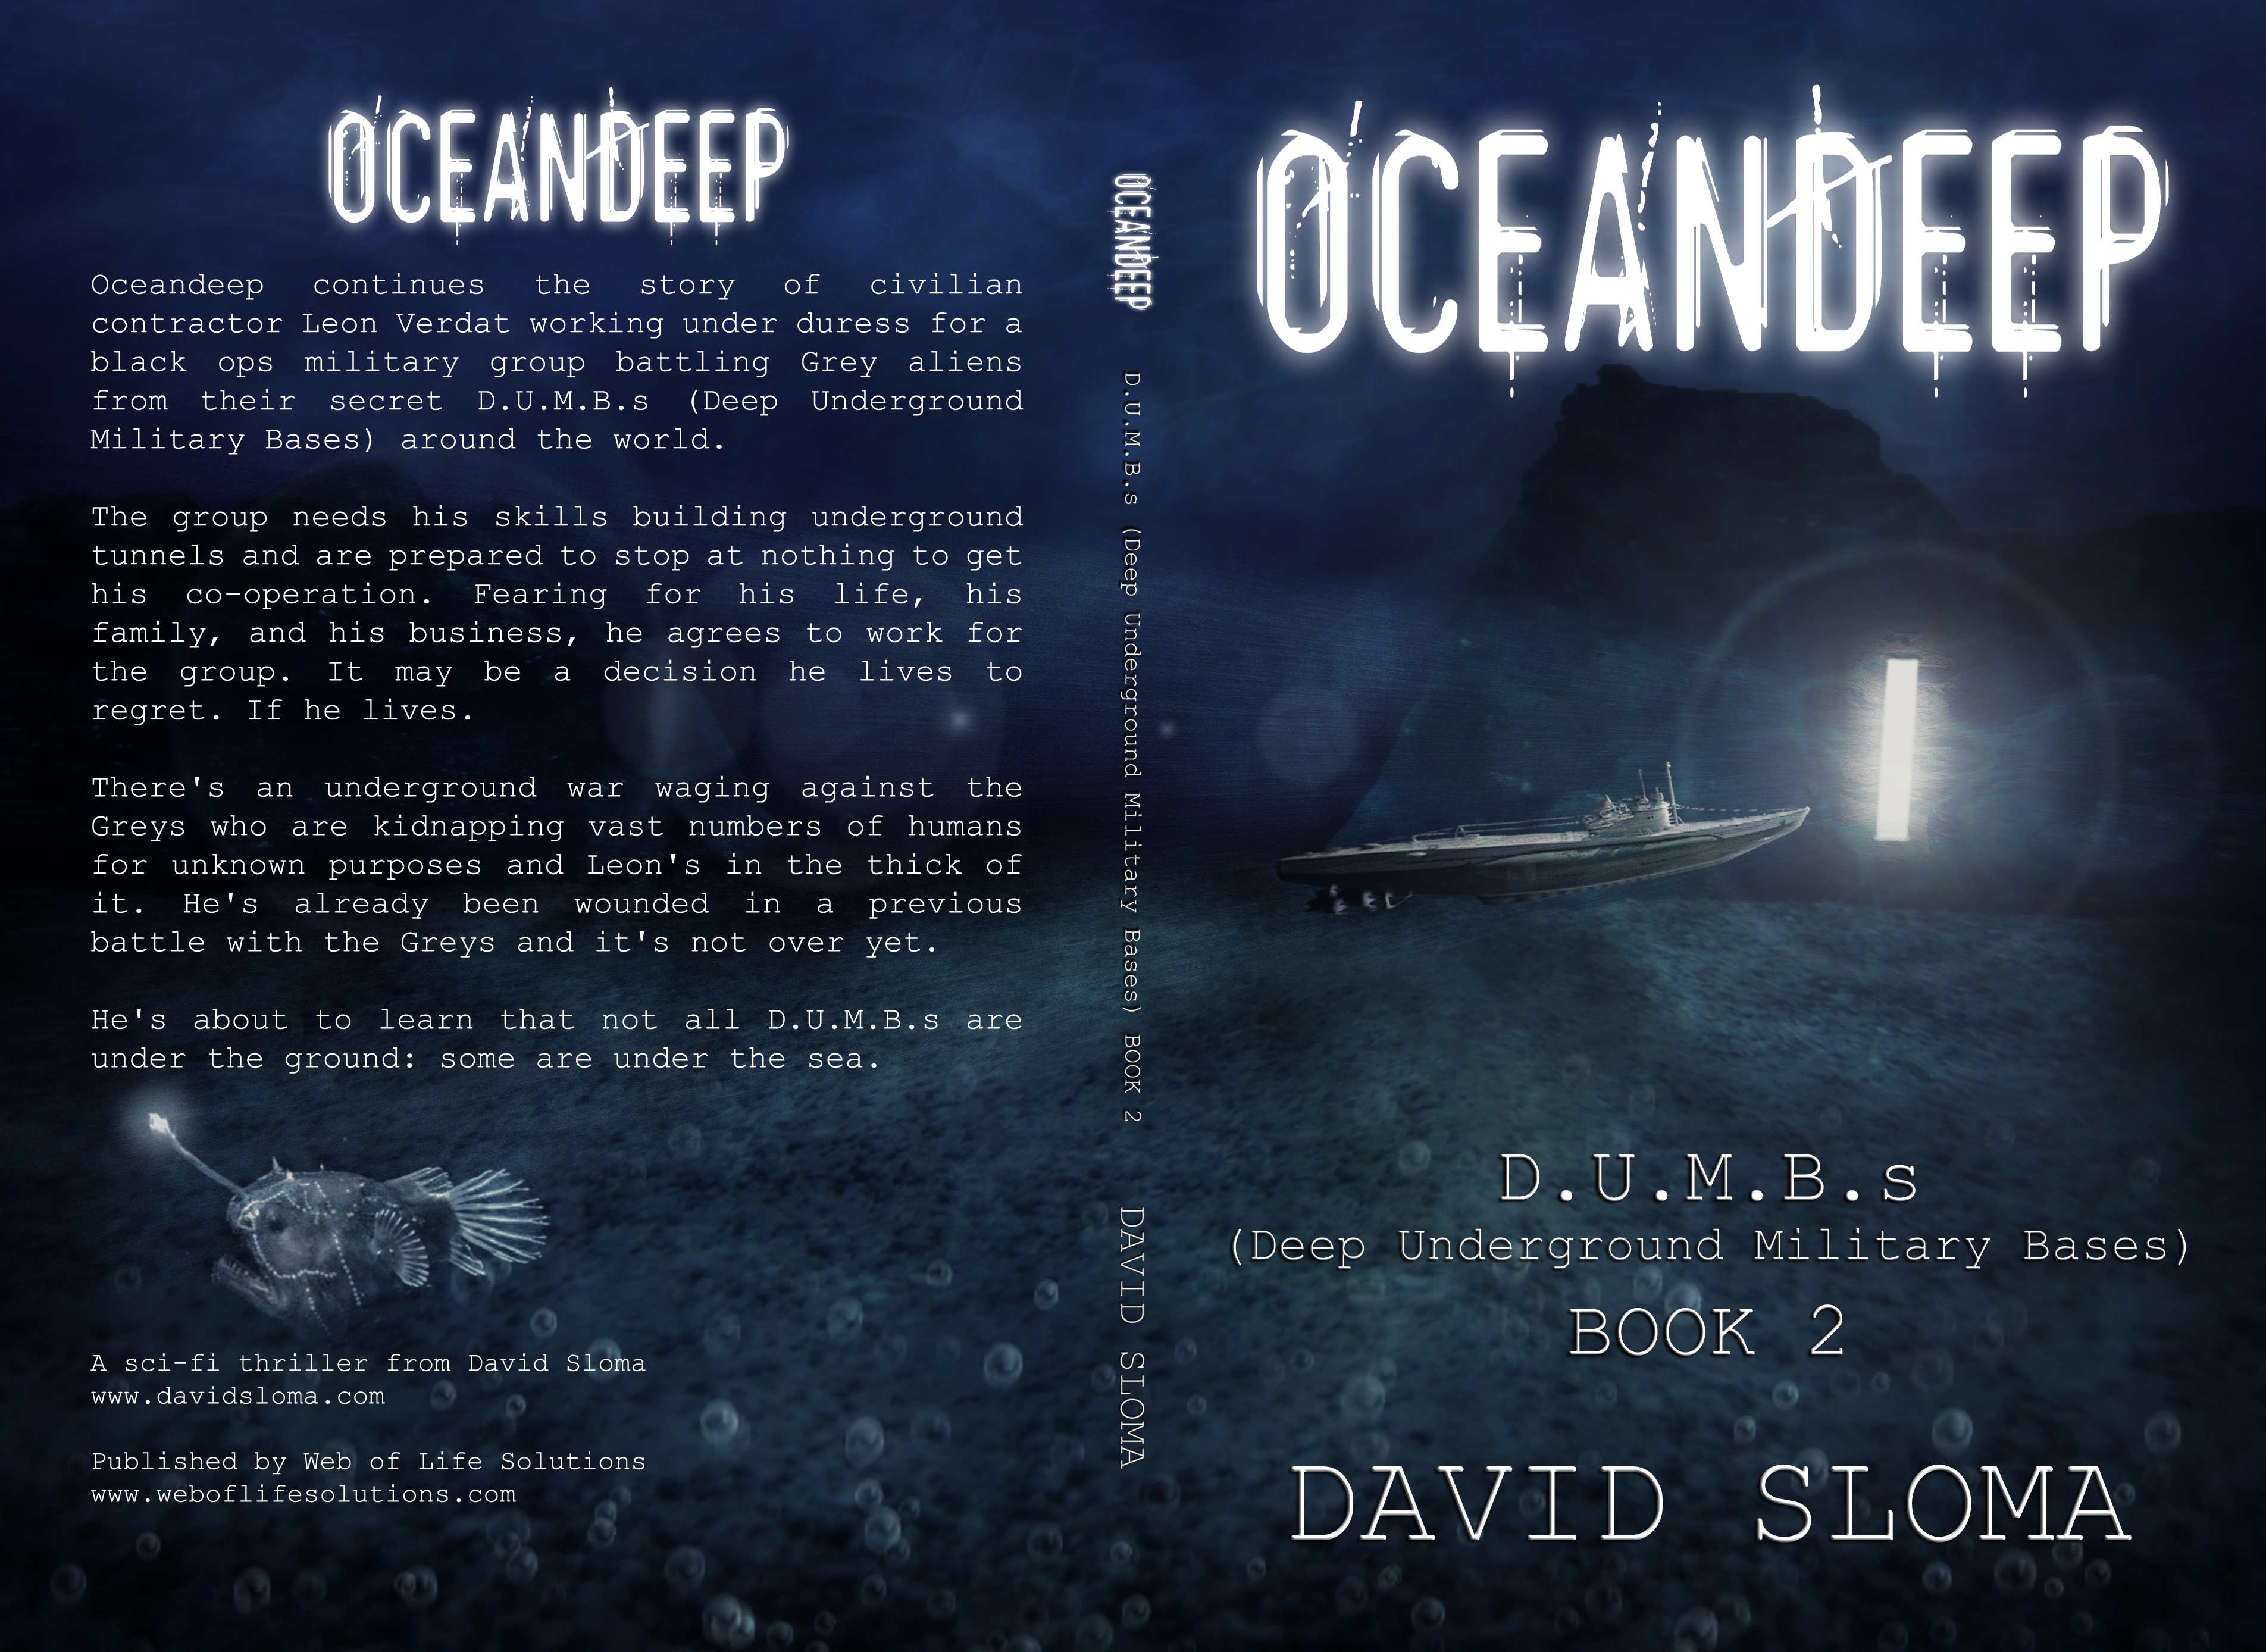 Oceandeep paperbacks on the way!